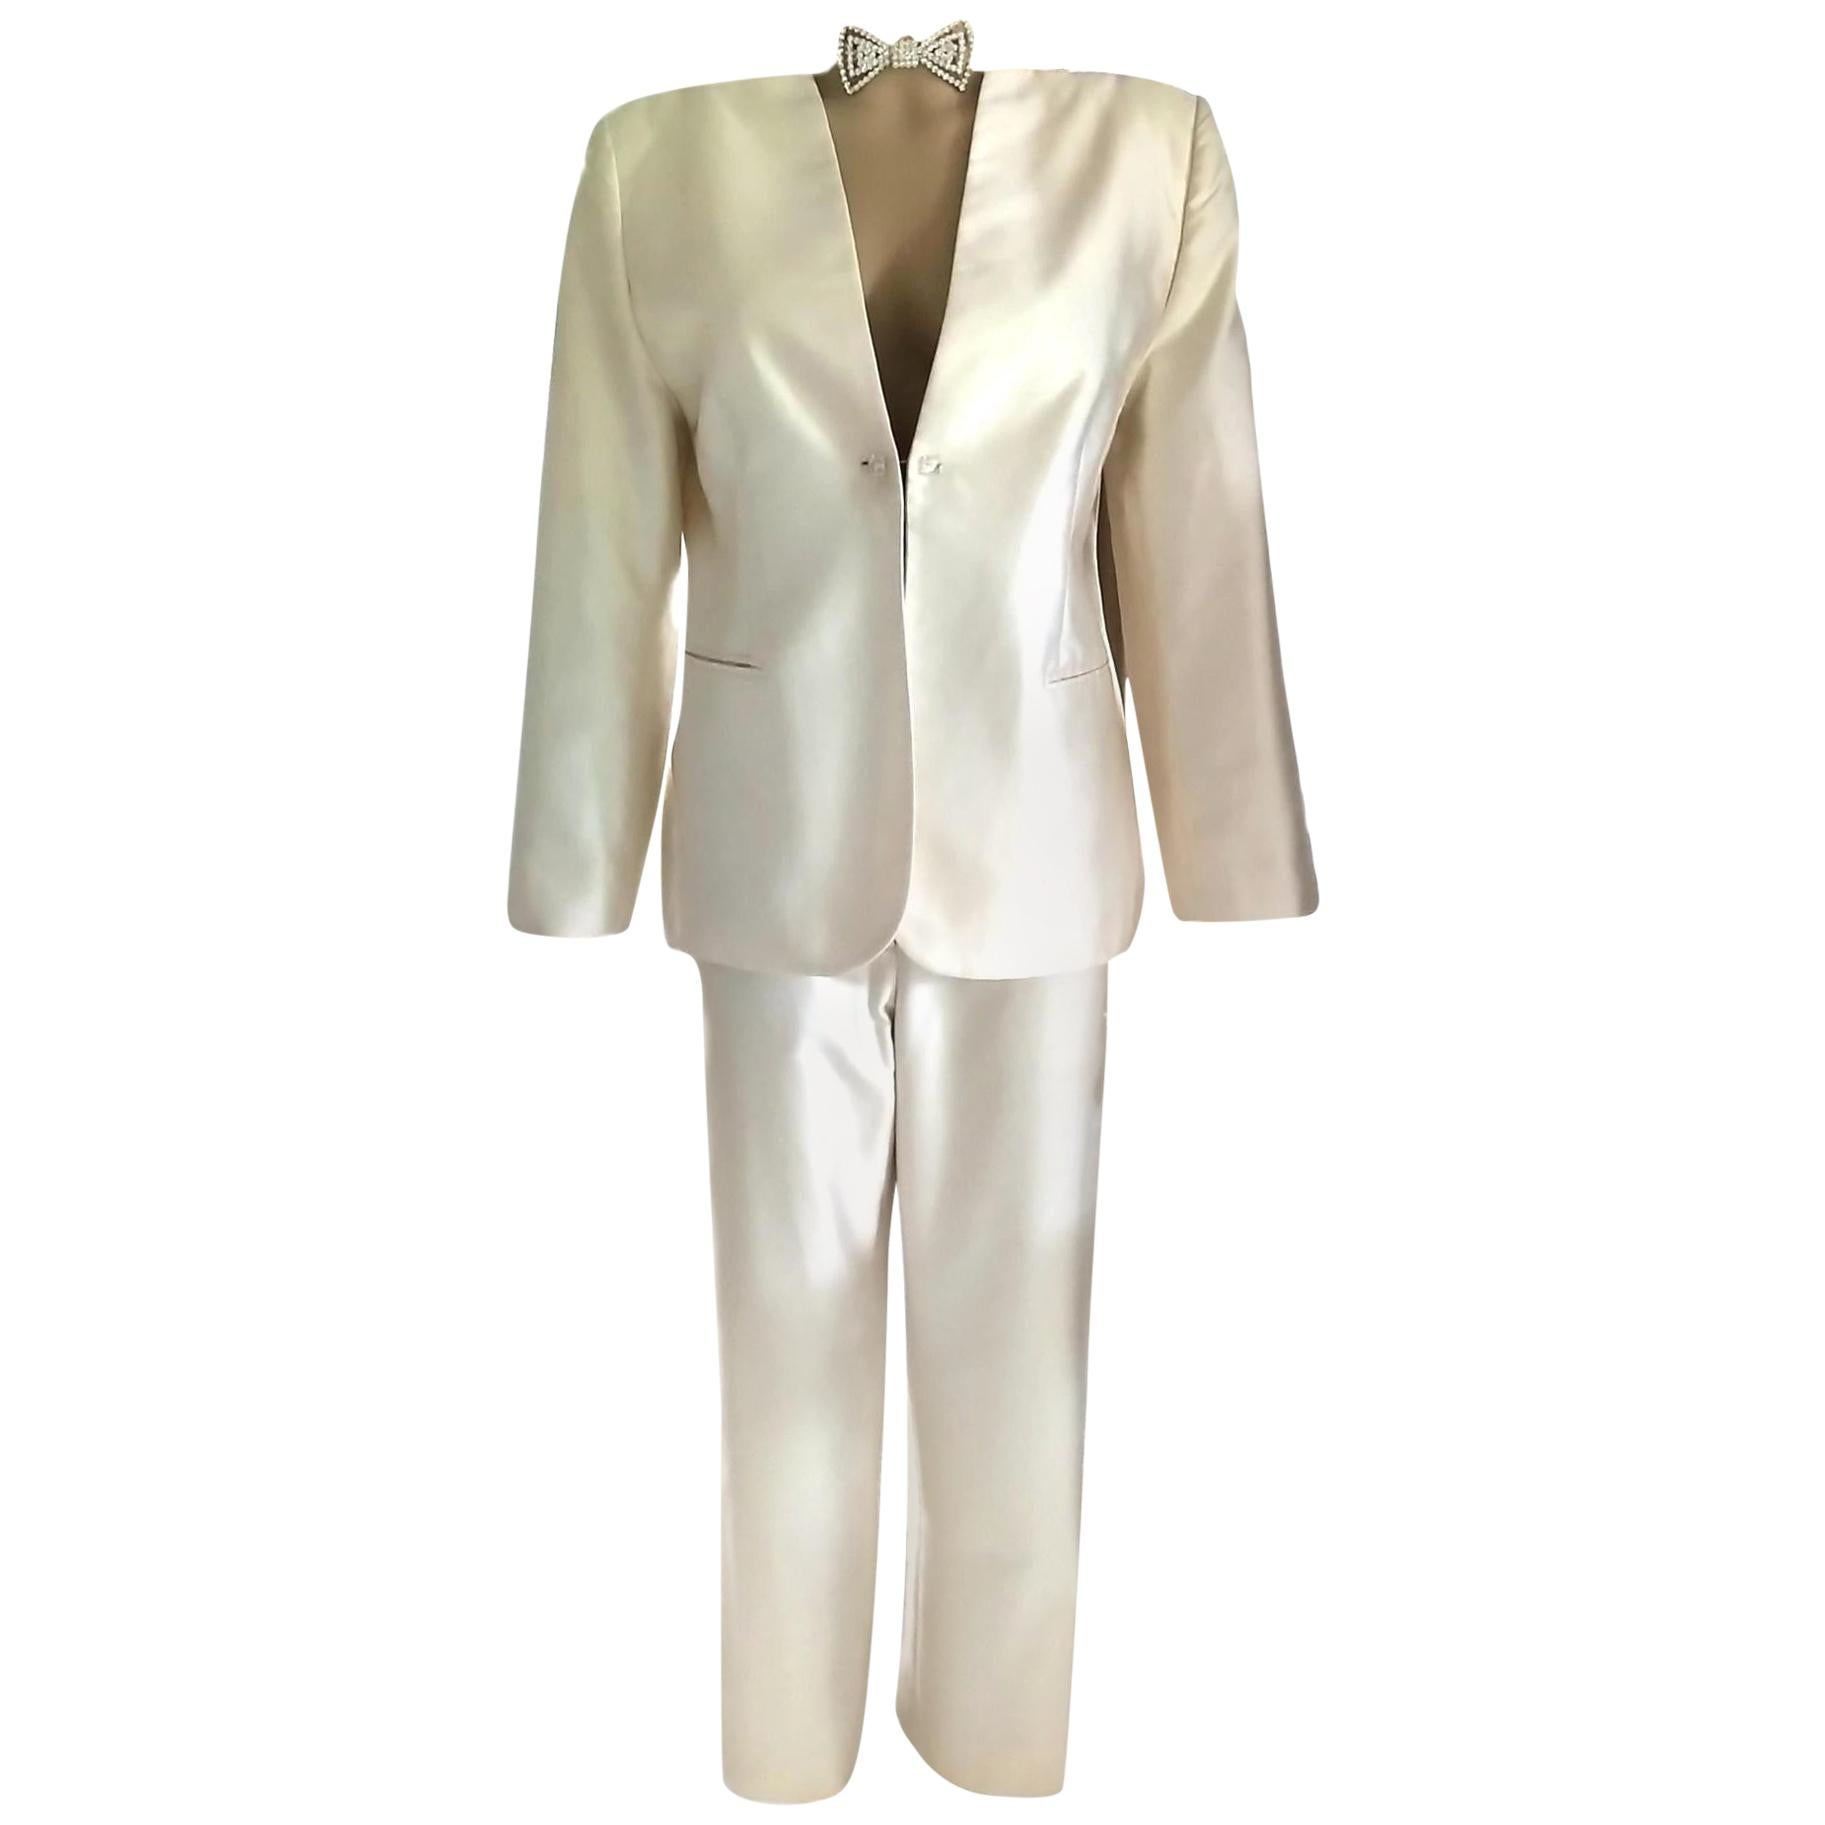 1990's Gianni Versace Couture Cream Silk Shimmer Crystal Jacket Pant Suit 42/ 6